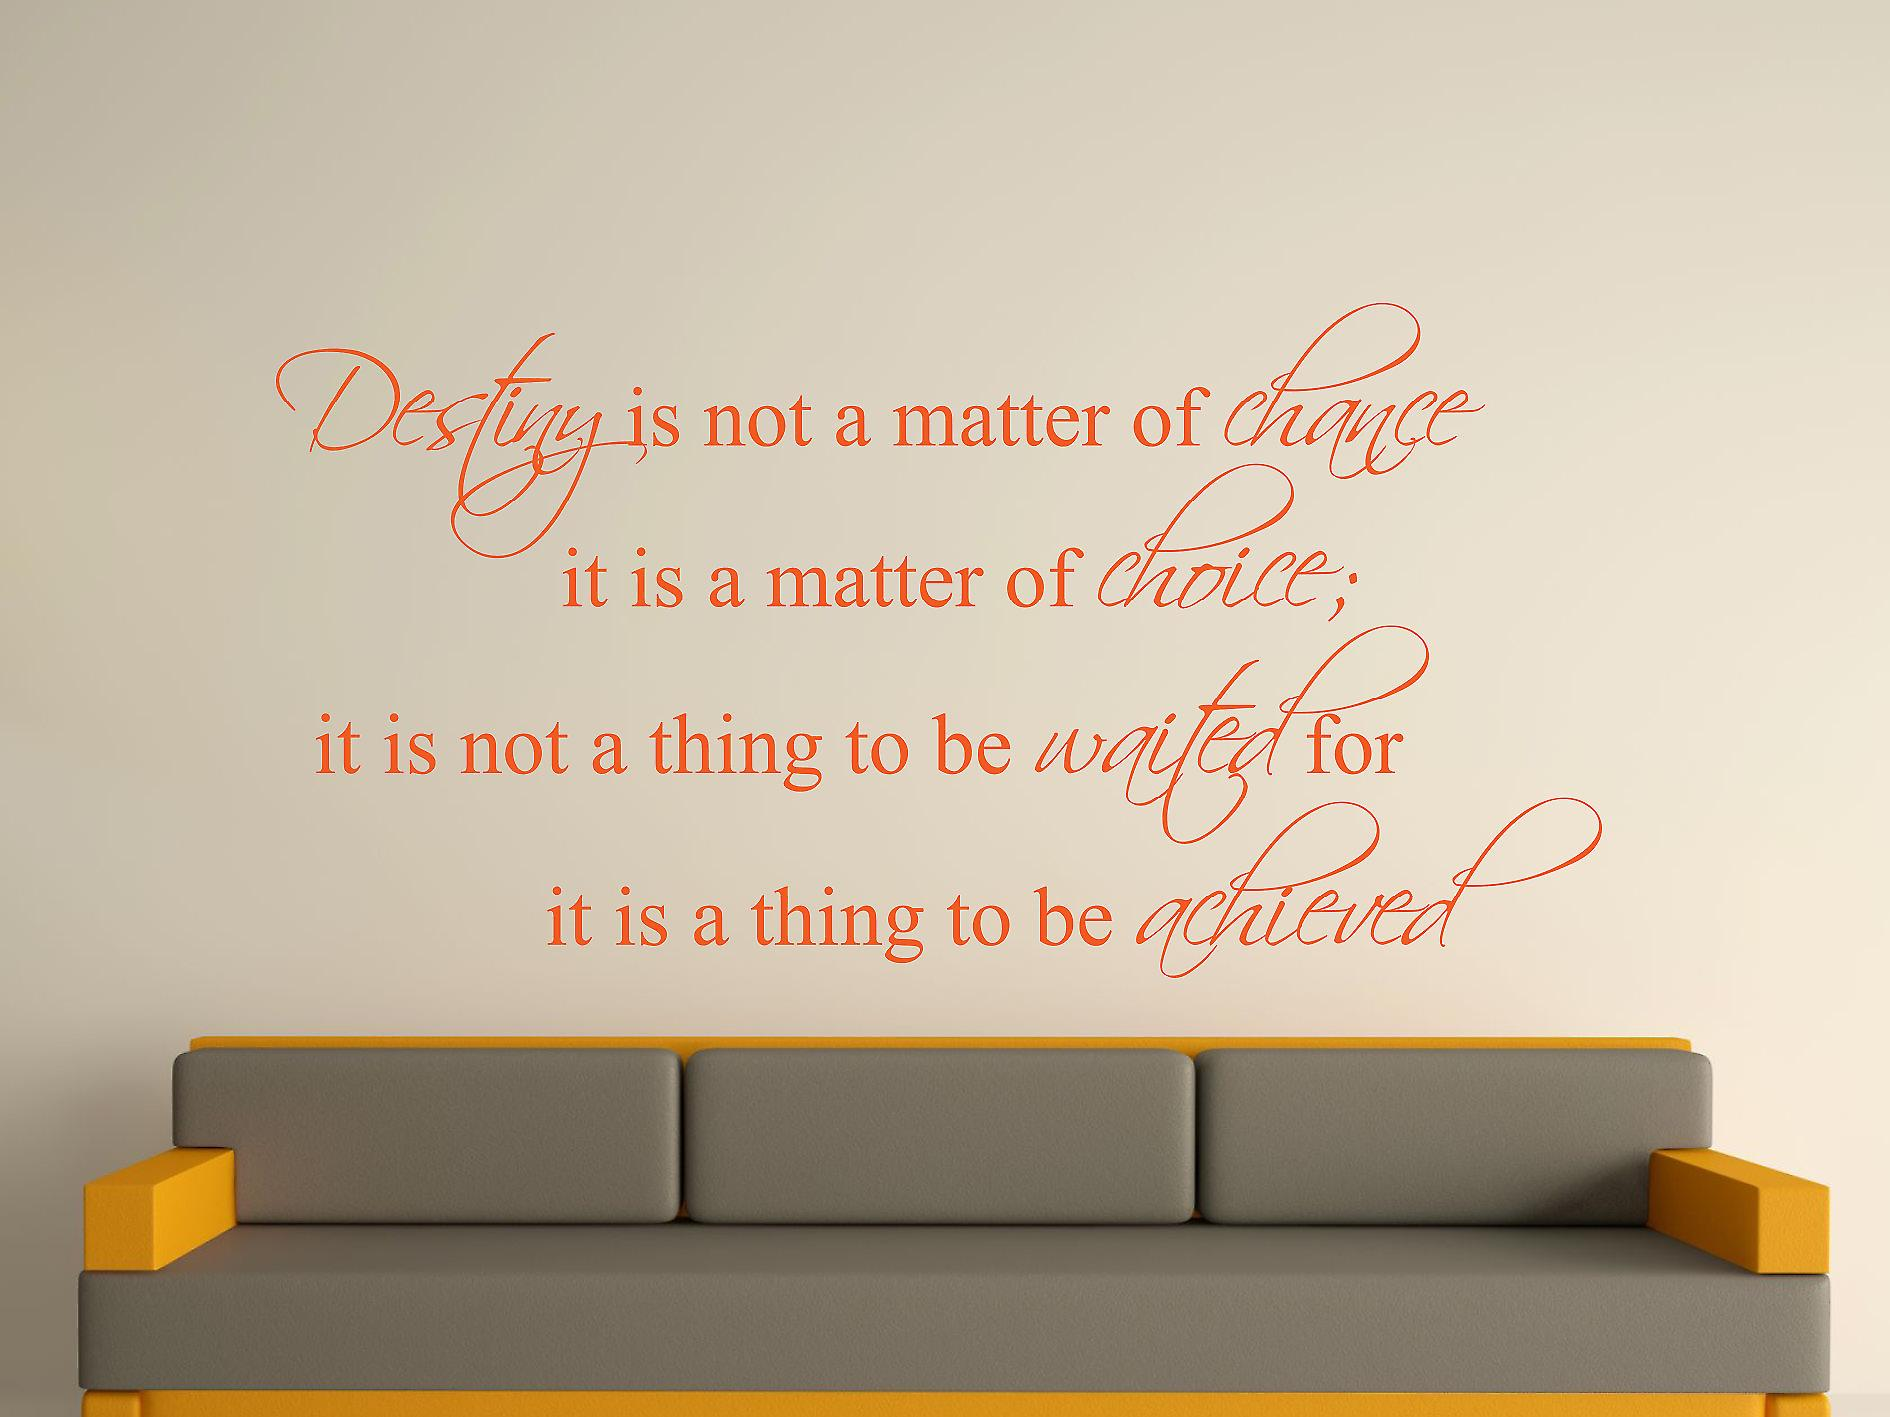 Destiny Is Not A Matter of Chance Wall Art Sticker - Orange